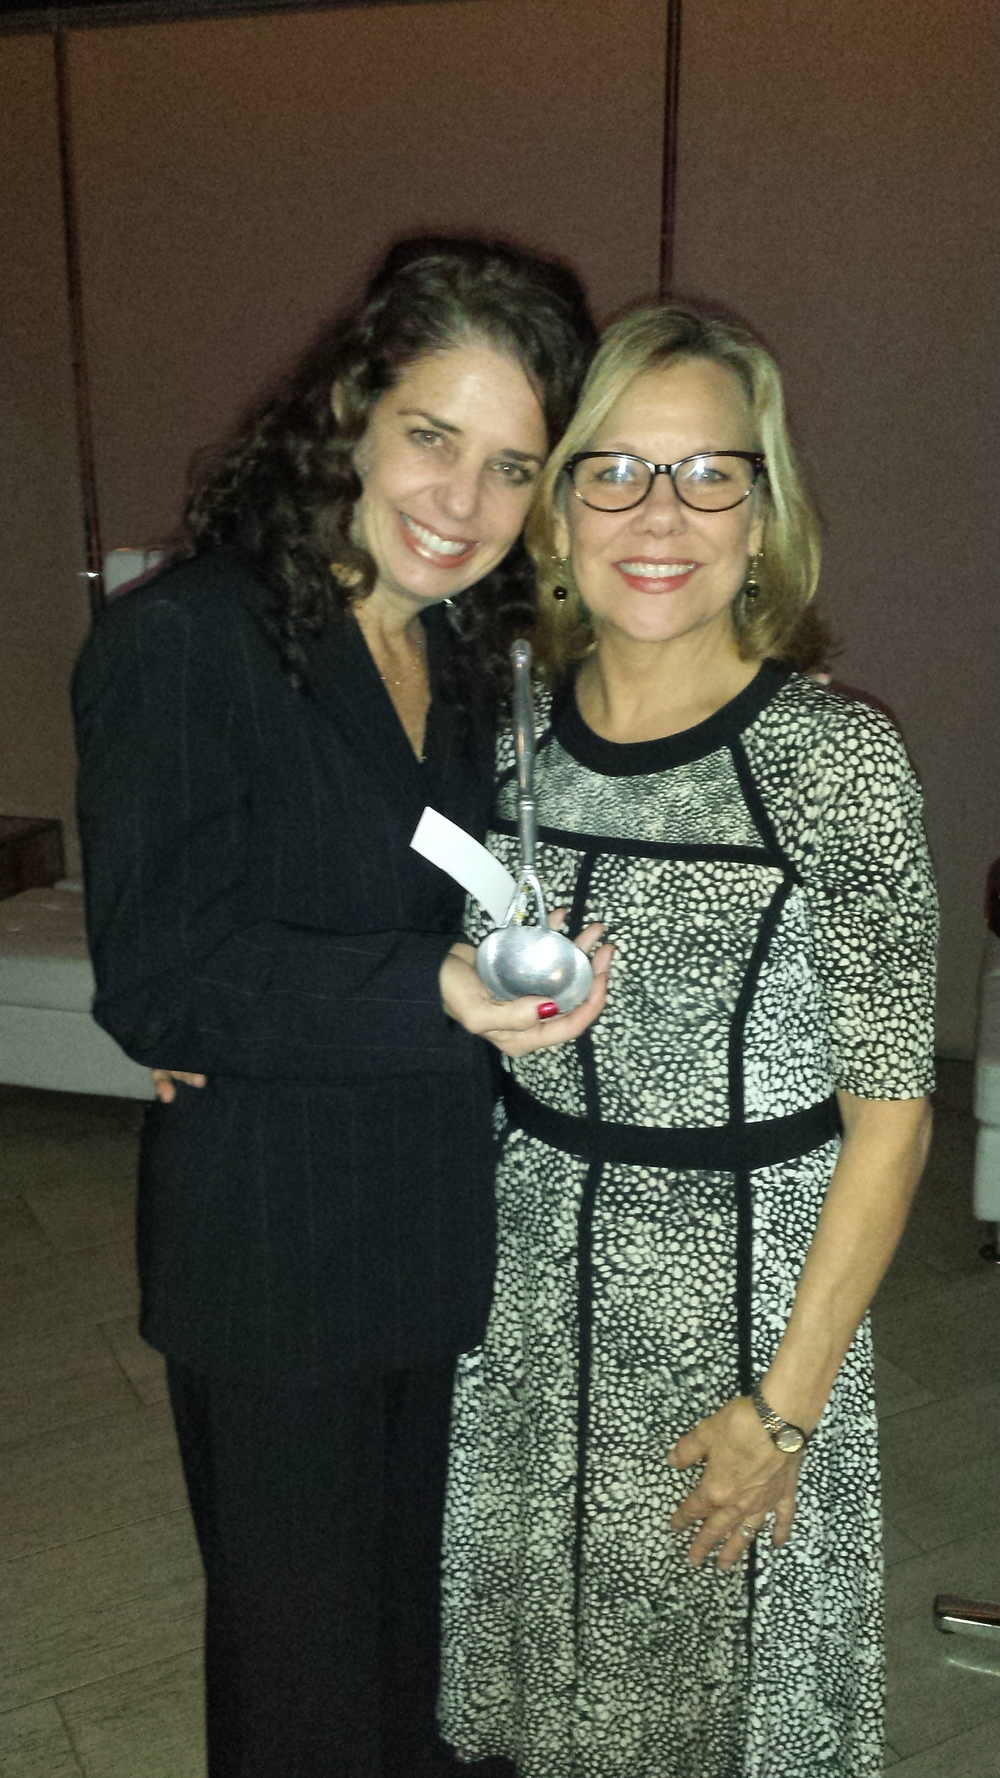 While with LevLane: With Sarah Jolles, Executive Director of Sales & Marketing for client Rydal Park, and Philadelphia PRSA Pepperpot Award